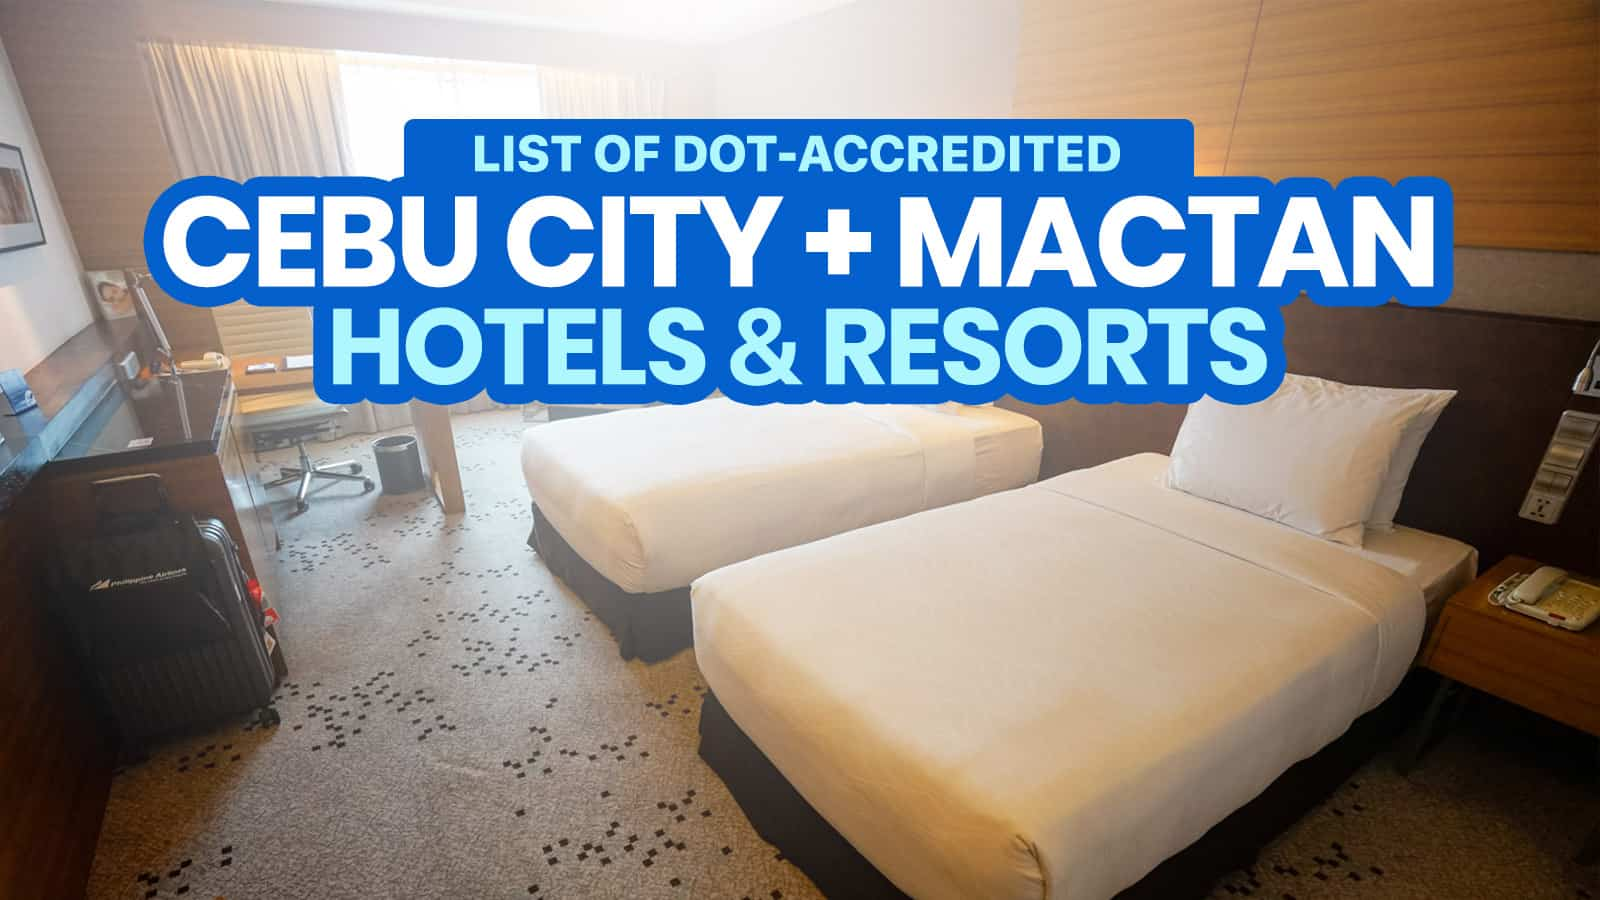 2021 DOT-Accredited Hotels & Resorts in CEBU CITY & MACTAN ISLAND (Open Now or Soon)